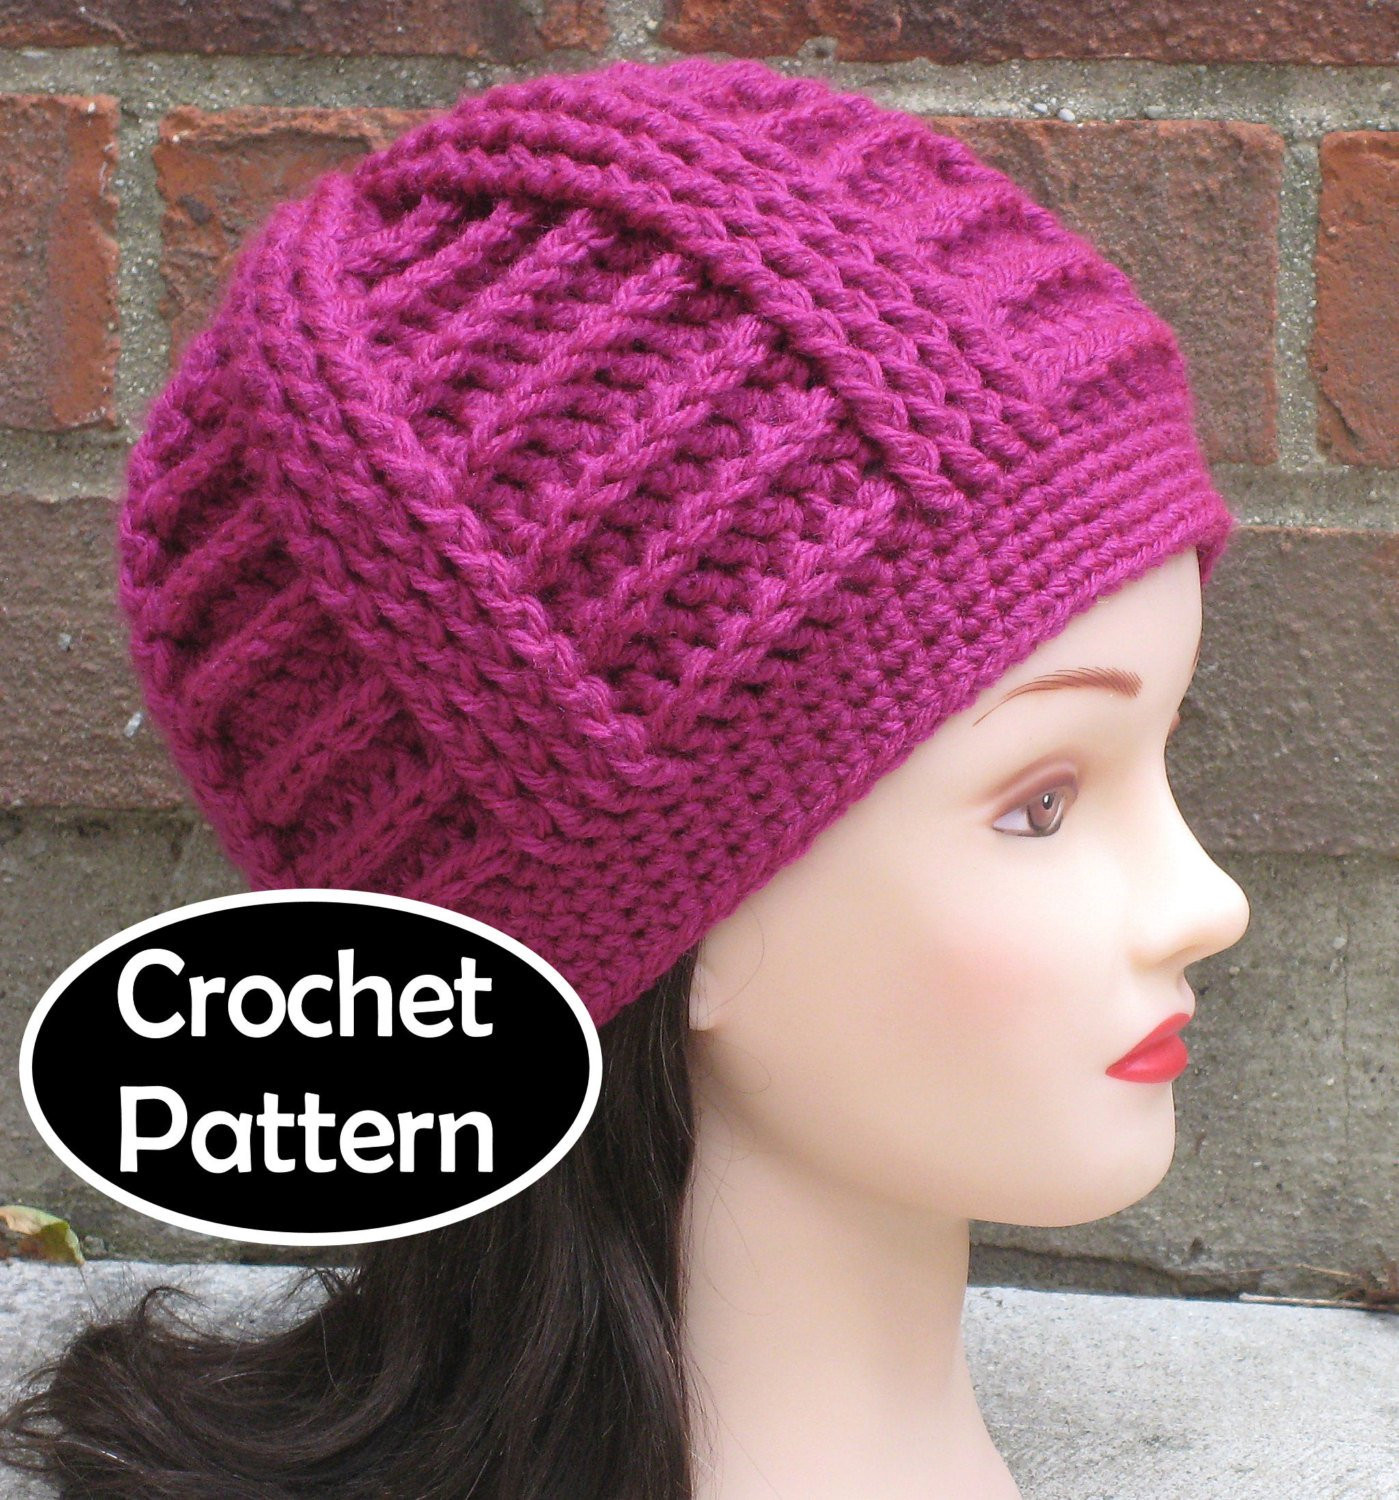 Unique Crochet Hat Pattern Instant Download Bailey Textured Beanie Easy Crochet Beanie Pattern Of Awesome A Variety Of Free Crochet Hat Patterns for Making Hats Easy Crochet Beanie Pattern